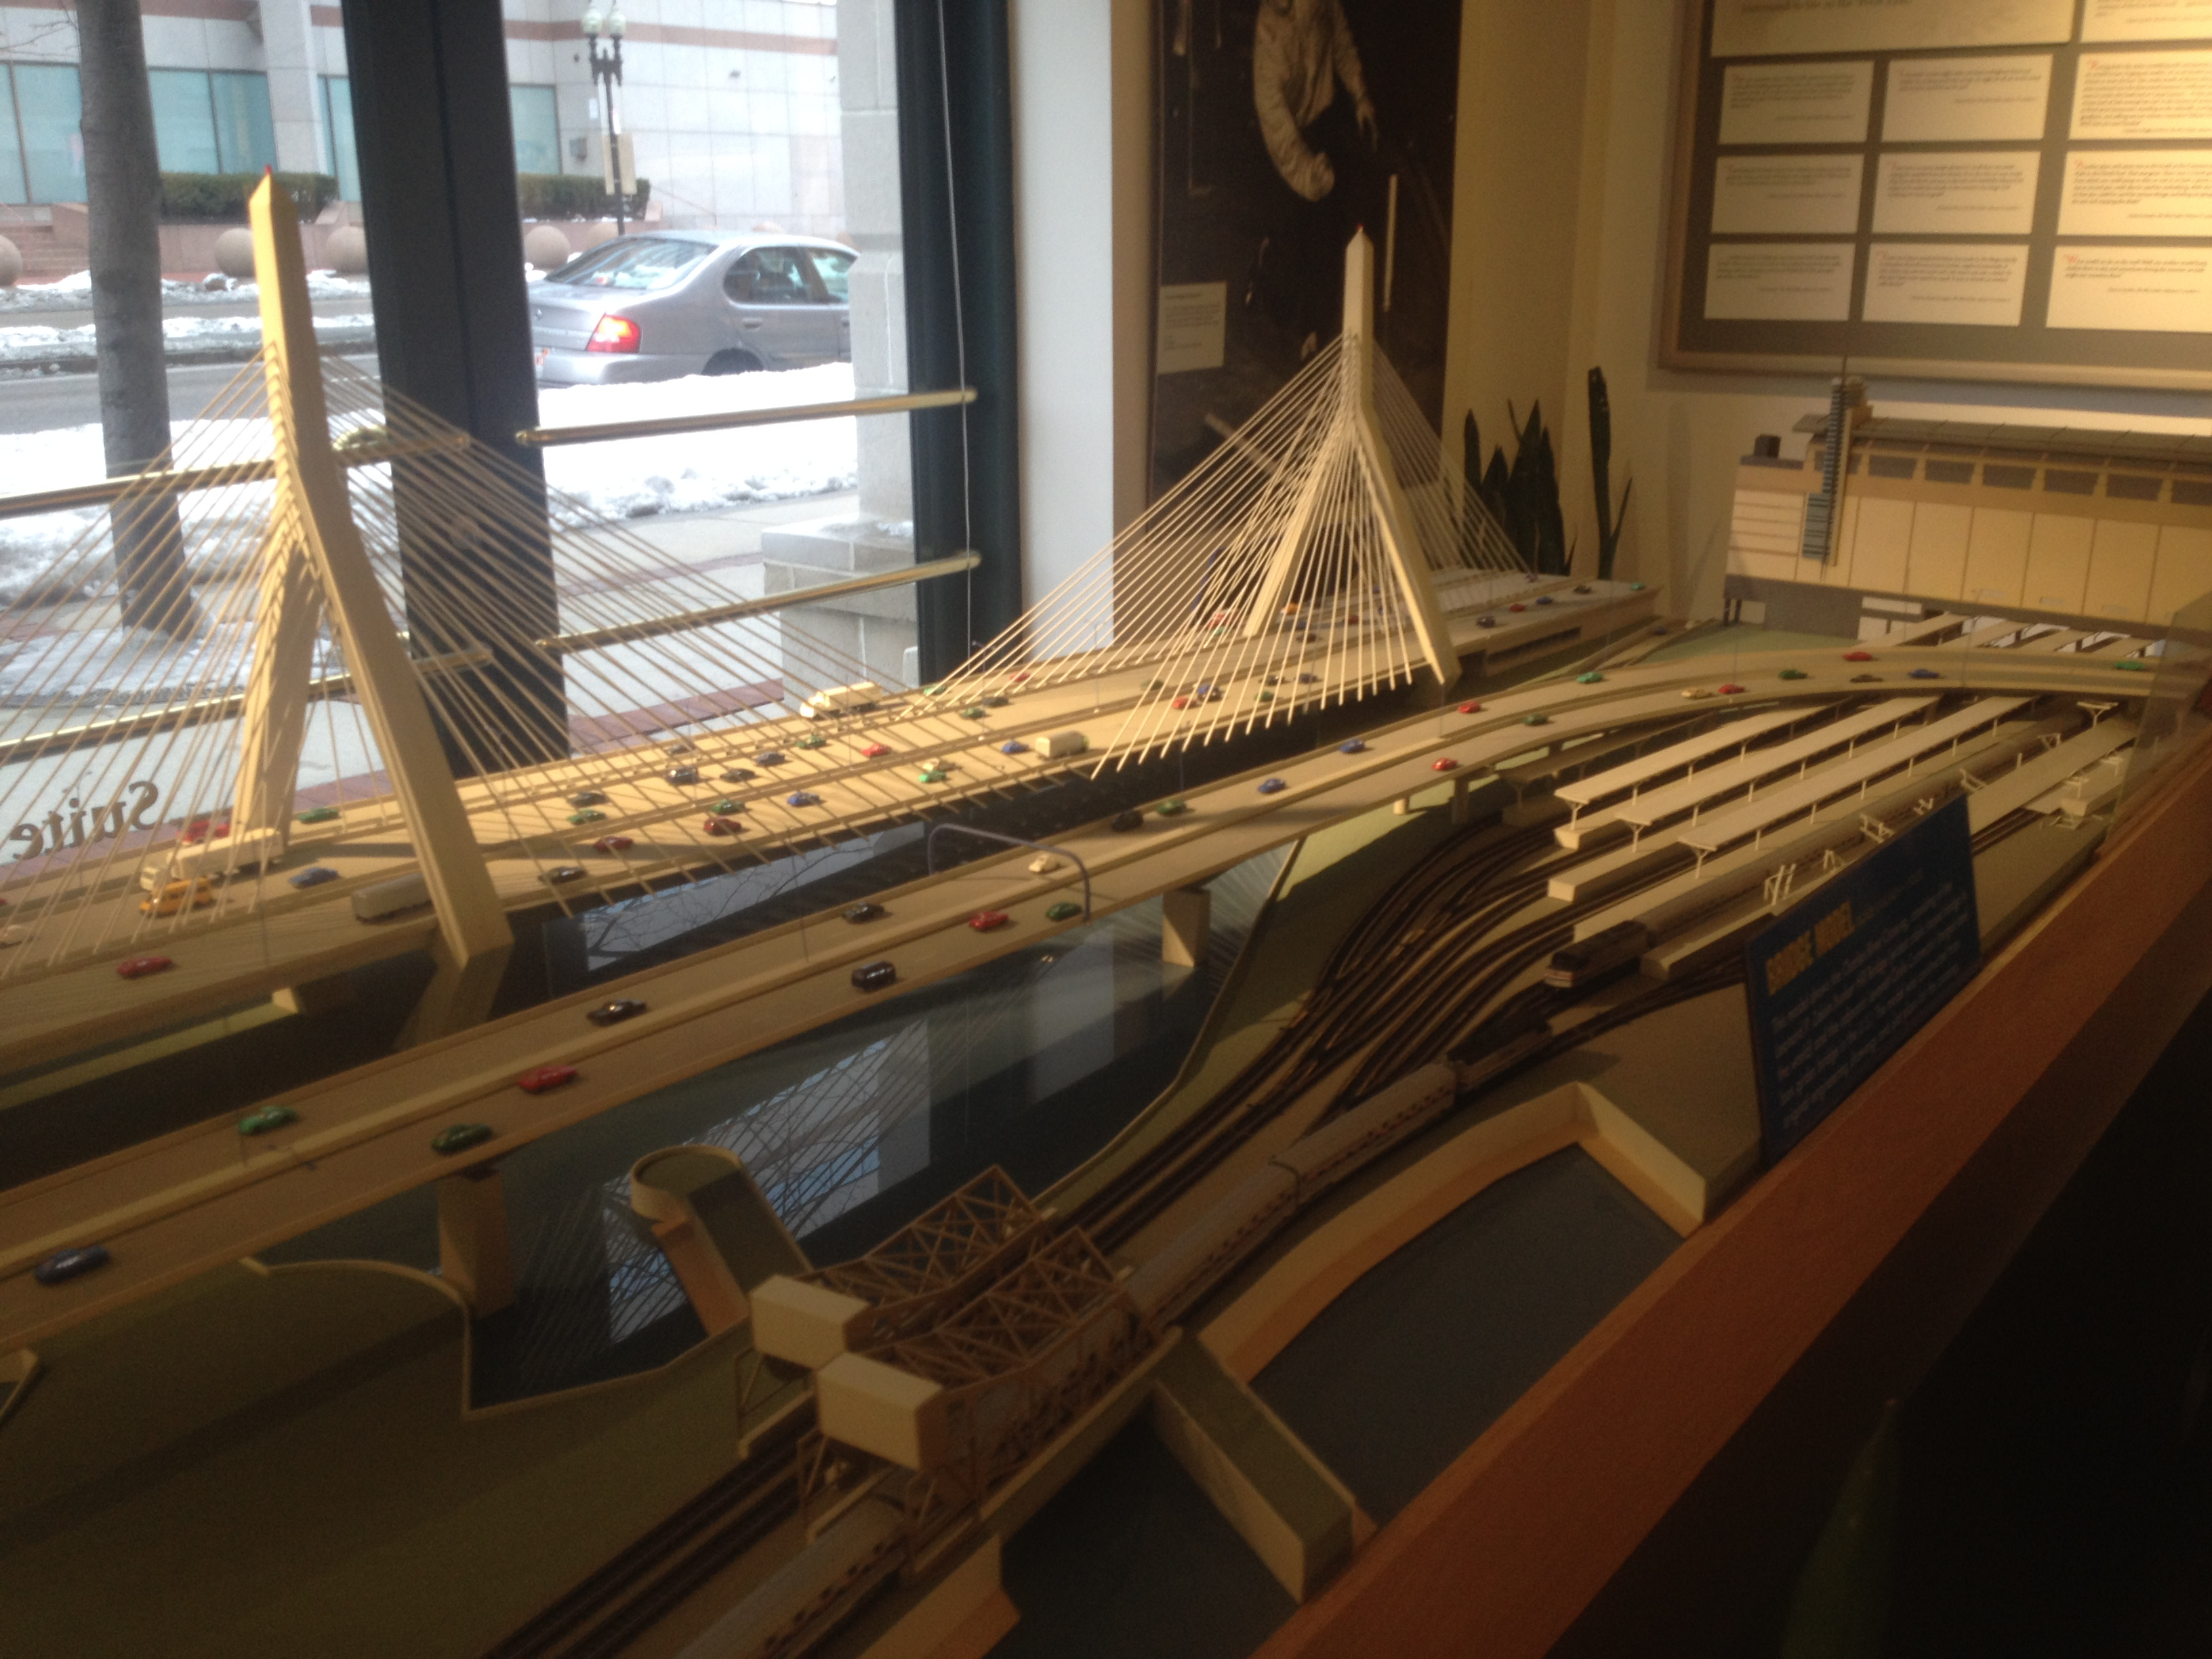 A model of the Zakim Bridge at the West End Museum